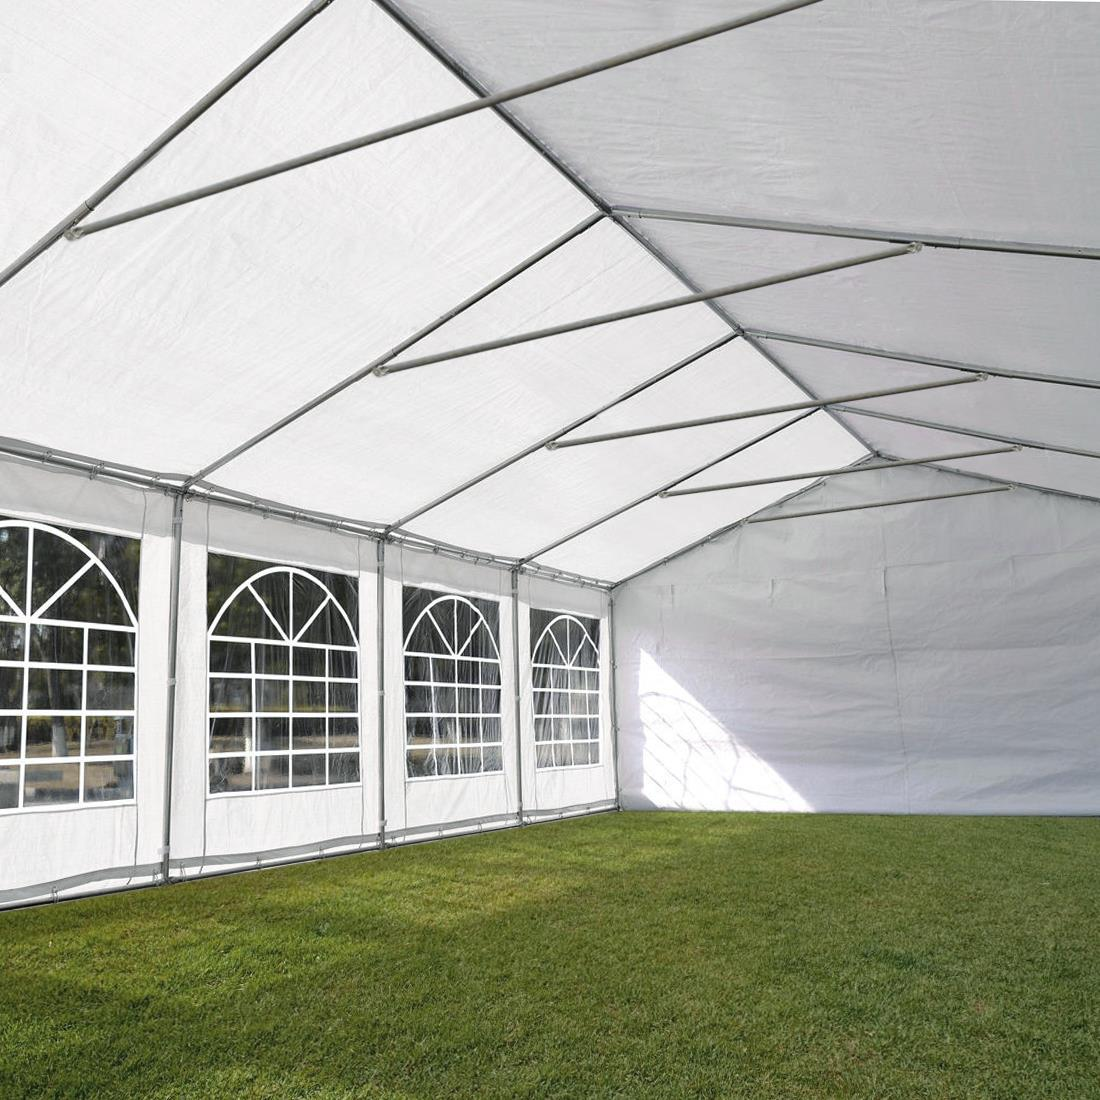 Peaktop-Heavy-Duty-Party-Tent-Event-Canopy-Gazebo-Wedding-Tent-With-Carry-Bag thumbnail 13